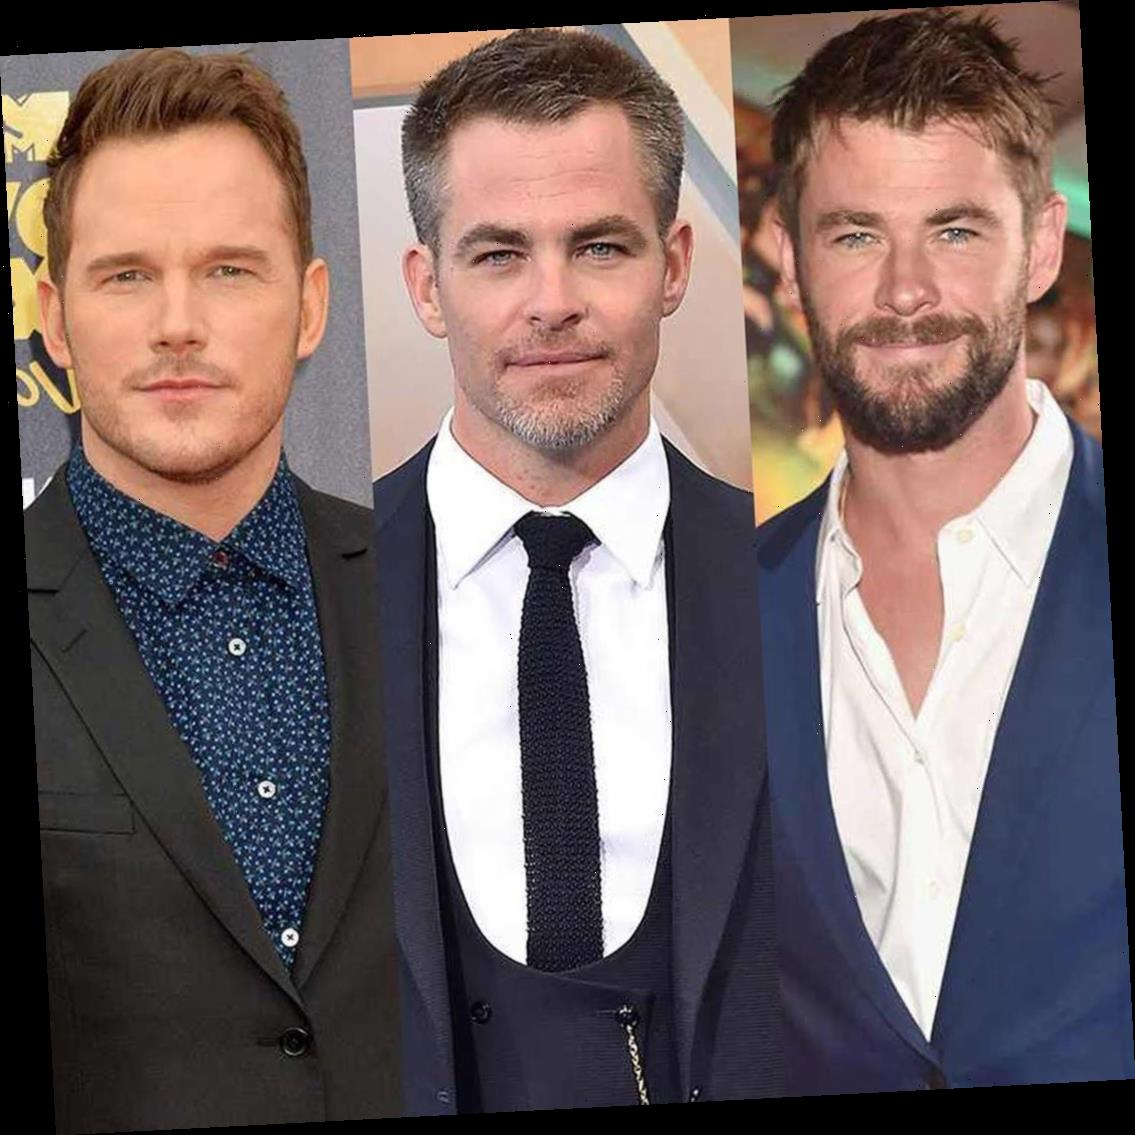 The Battle of the Hollywood Chrises Continues: Find Out Which Chris Is Winning Now